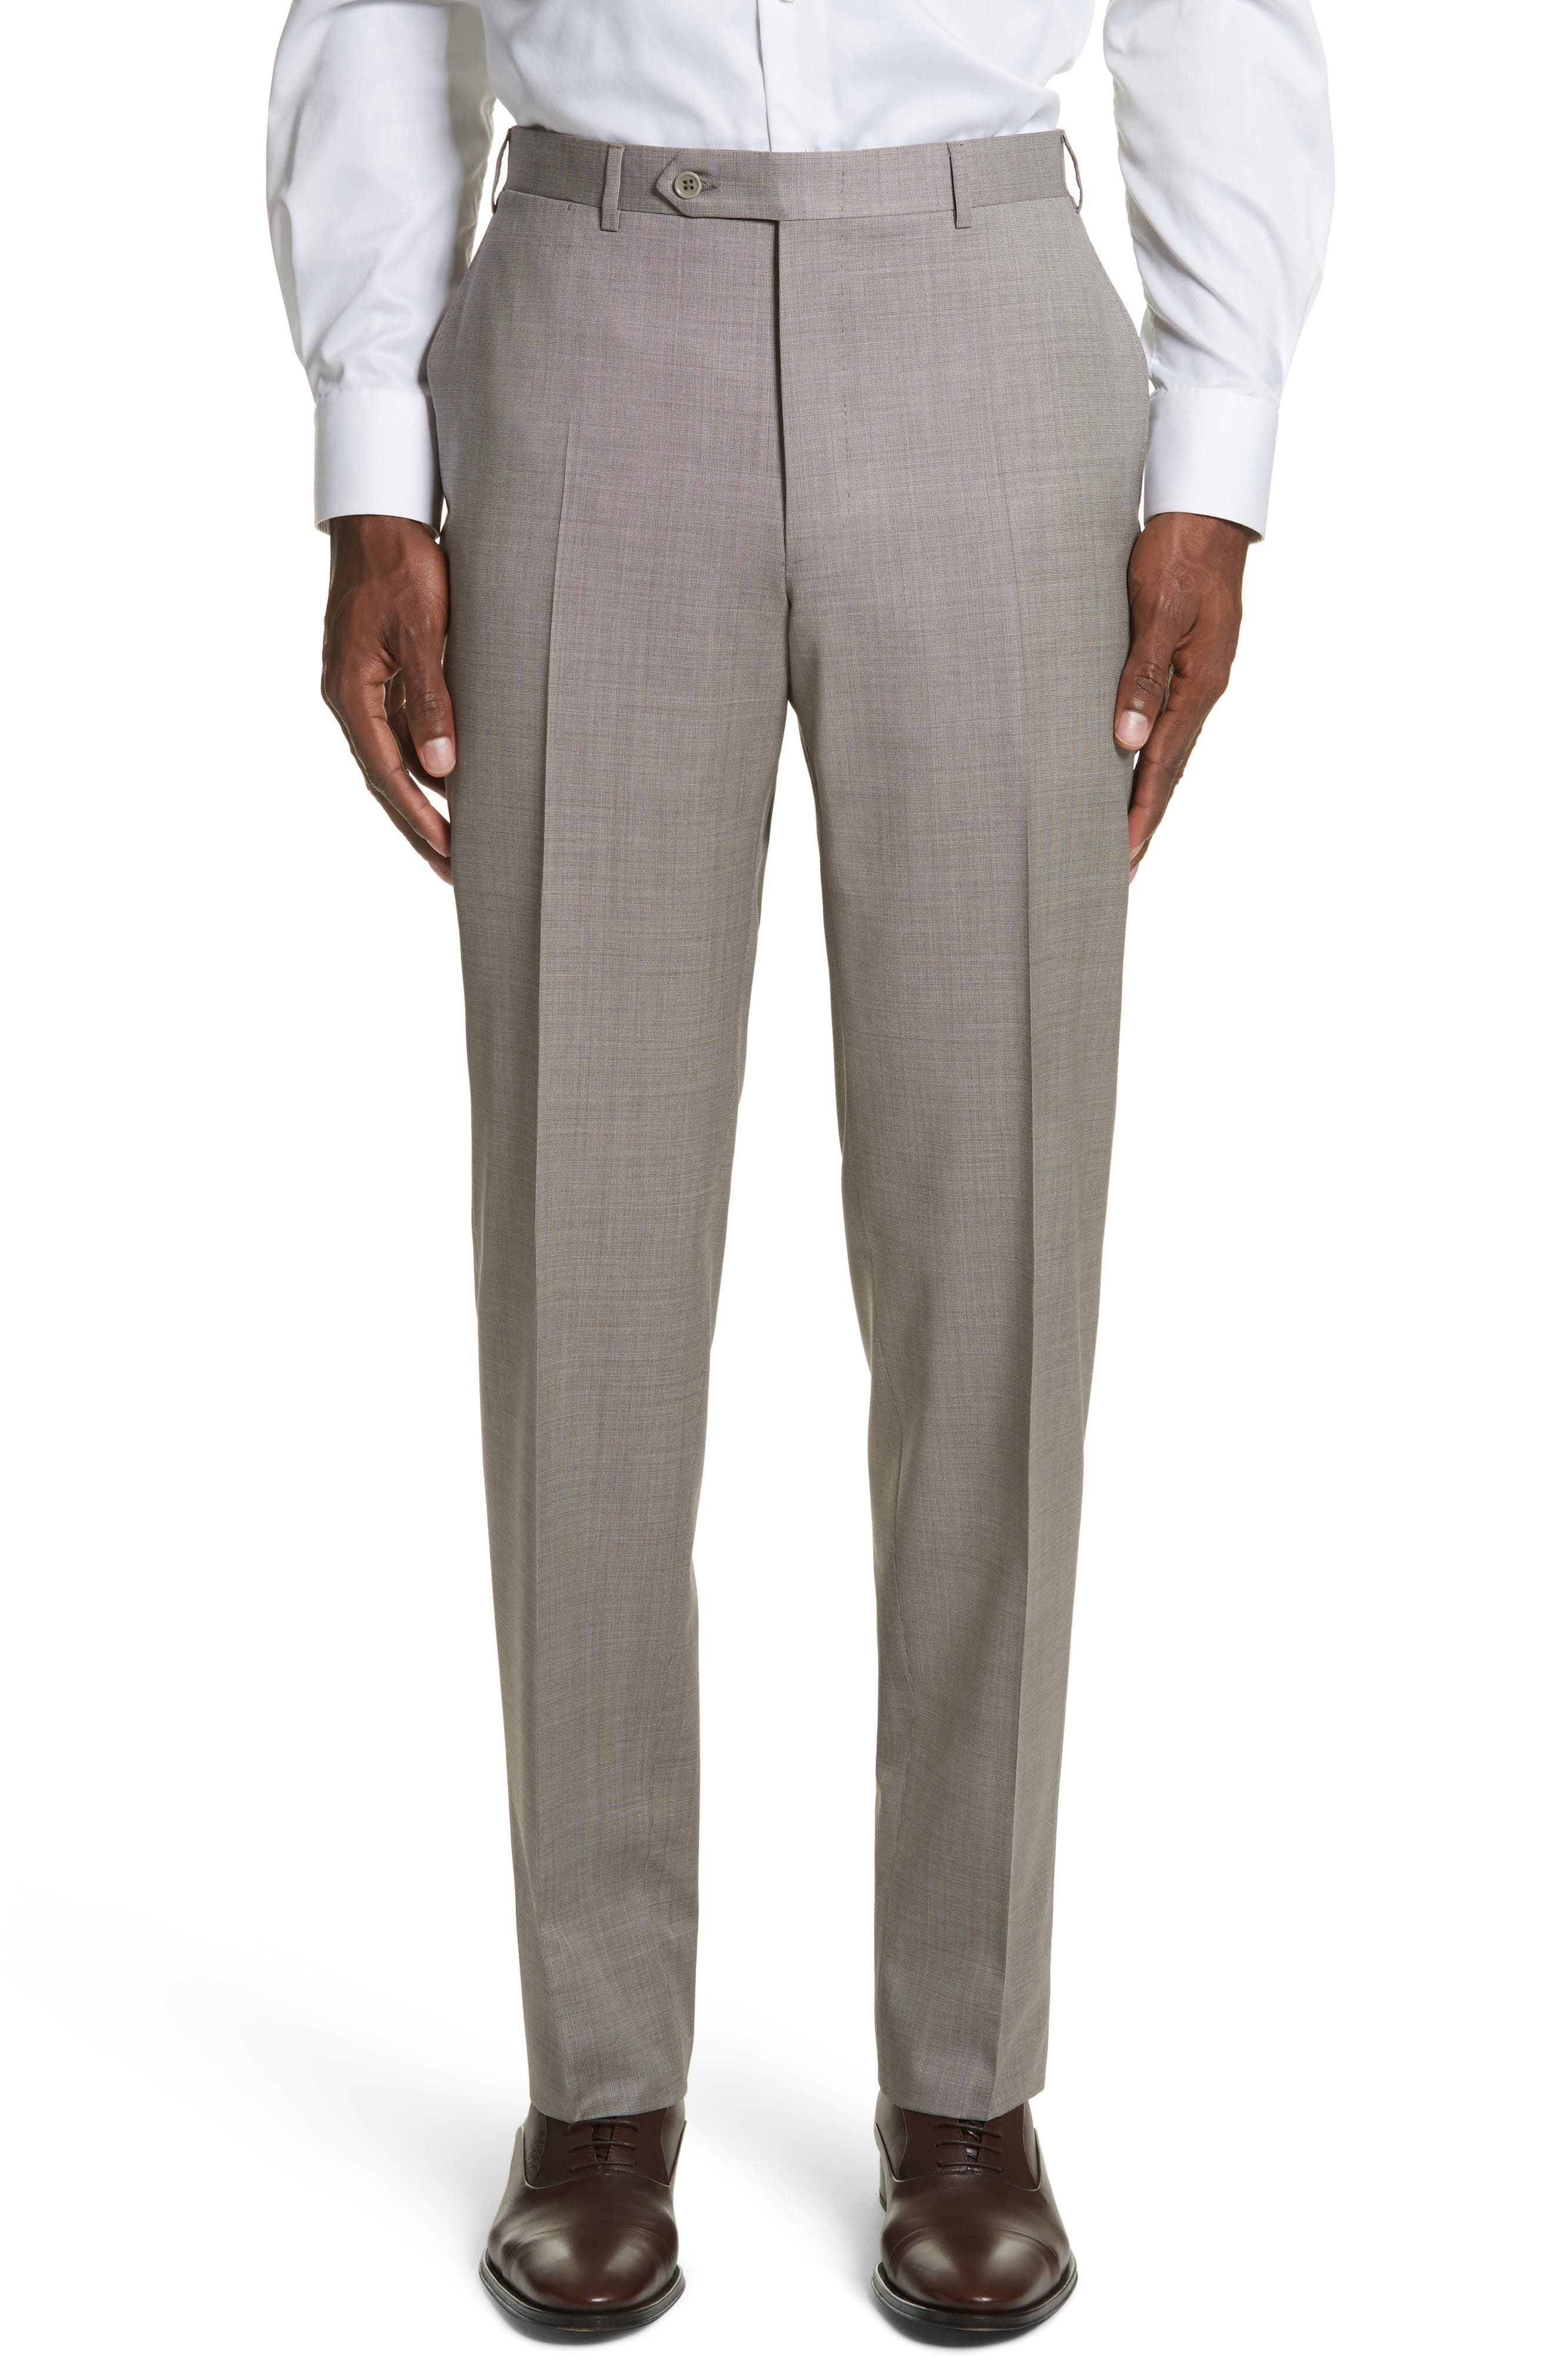 Flat Front Solid Wool Trousers,                             Main thumbnail 1, color,                             252